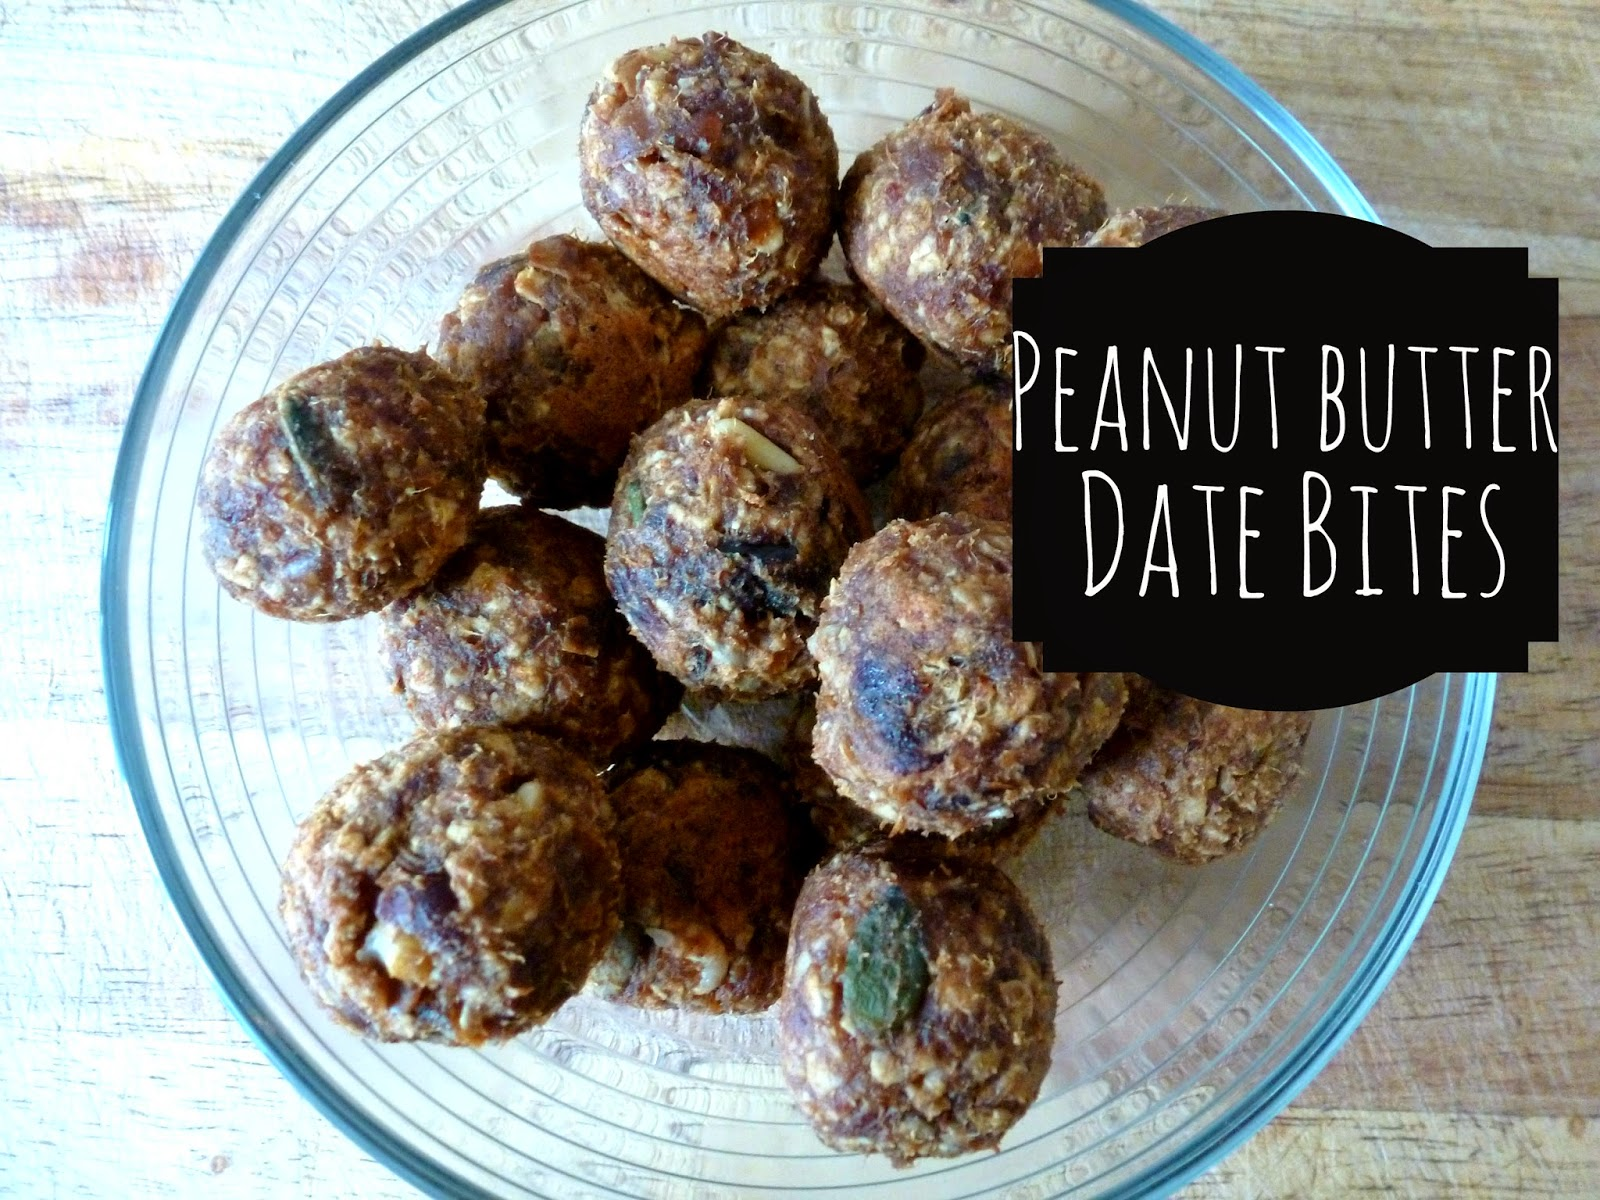 Healthy nutritious snack - peanut butter date bites, raw